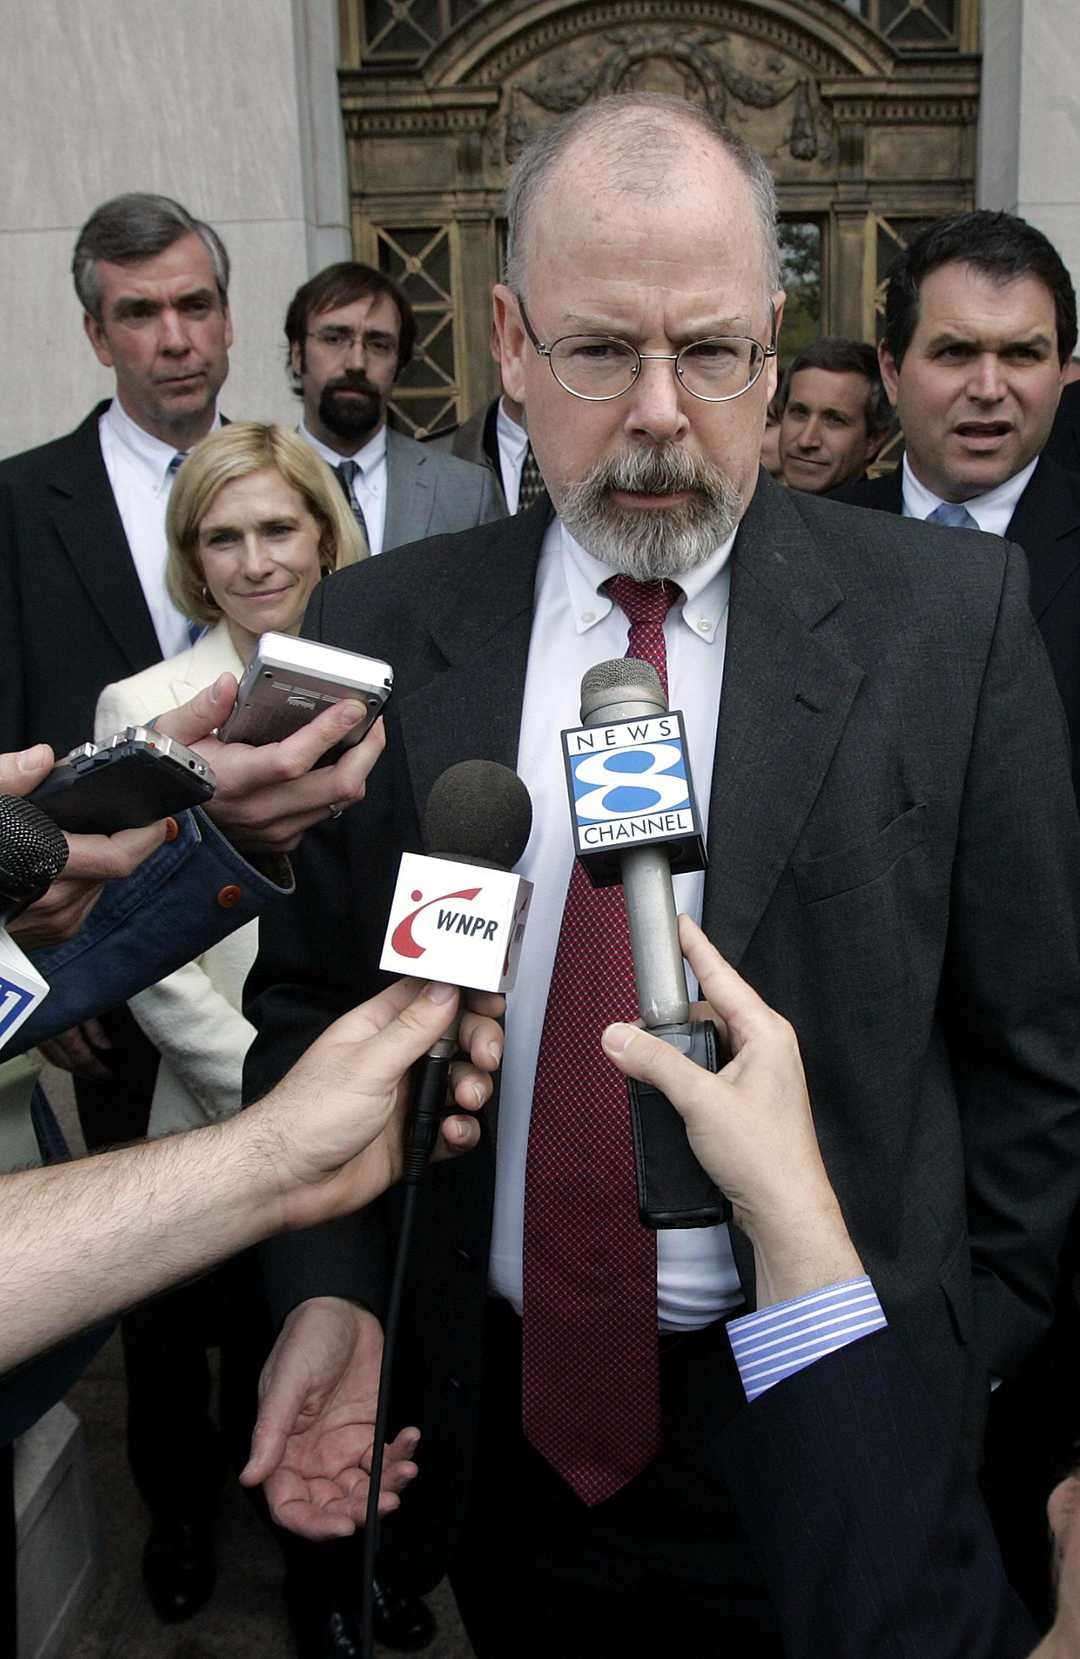 """Attorney General William Barr tapped Connecticut's chief federal prosecutor, John Durham, to assist in an investigation into the origins of the Russia investigation and the FBI's surveillance activities, a person familiar with the matter said Monday.  The person, who is not authorized to comment publicly, said that Durham has been assisting the attorney general for at least a couple of weeks to determine whether federal investigators acted appropriately in the early stages of the now-completed inquiry into Russia's interference in the 2016 election.  Barr announced that he had launched the review last month during an appearance before a Senate subcommittee. He expressed concern about the FBI's use of surveillance involving associates of then-candidate Donald Trump as authorities sought to understand Russia's interference efforts, though Barr also said he did not know whether officials had done anything wrong.  """"Spying on a campaign is a big deal,"""" Barr told lawmakers then. """"I think spying did occur. The question is whether it was adequately predicated.""""  At that time, the attorney general said he planned to examine the """"genesis and the conduct"""" of the FBI's investigation into possible ties between the Trump campaign and Russia.  """"I am not saying that improper surveillance occurred,"""" Barr told the Senate Appropriations subcommittee. """"I am concerned about it. There is a basis for my concern.""""   Democrats have seized on Barr's use of the term """"spying,"""" asserting that the attorney general has sided with President Trump to disparage the 22-month investigation that the president has repeatedly described as a """"witch-hunt.""""  As recently as last week, however, FBI Director Christopher Wray said he was unaware of any evidence indicating that the FBI had abused its surveillance authority, distancing himself from the attorney general. """"That's not the term I would use,"""" Wray told the same Senate committee, referring to the """"spying"""" reference.  Rod Rosenstein, until recently the """